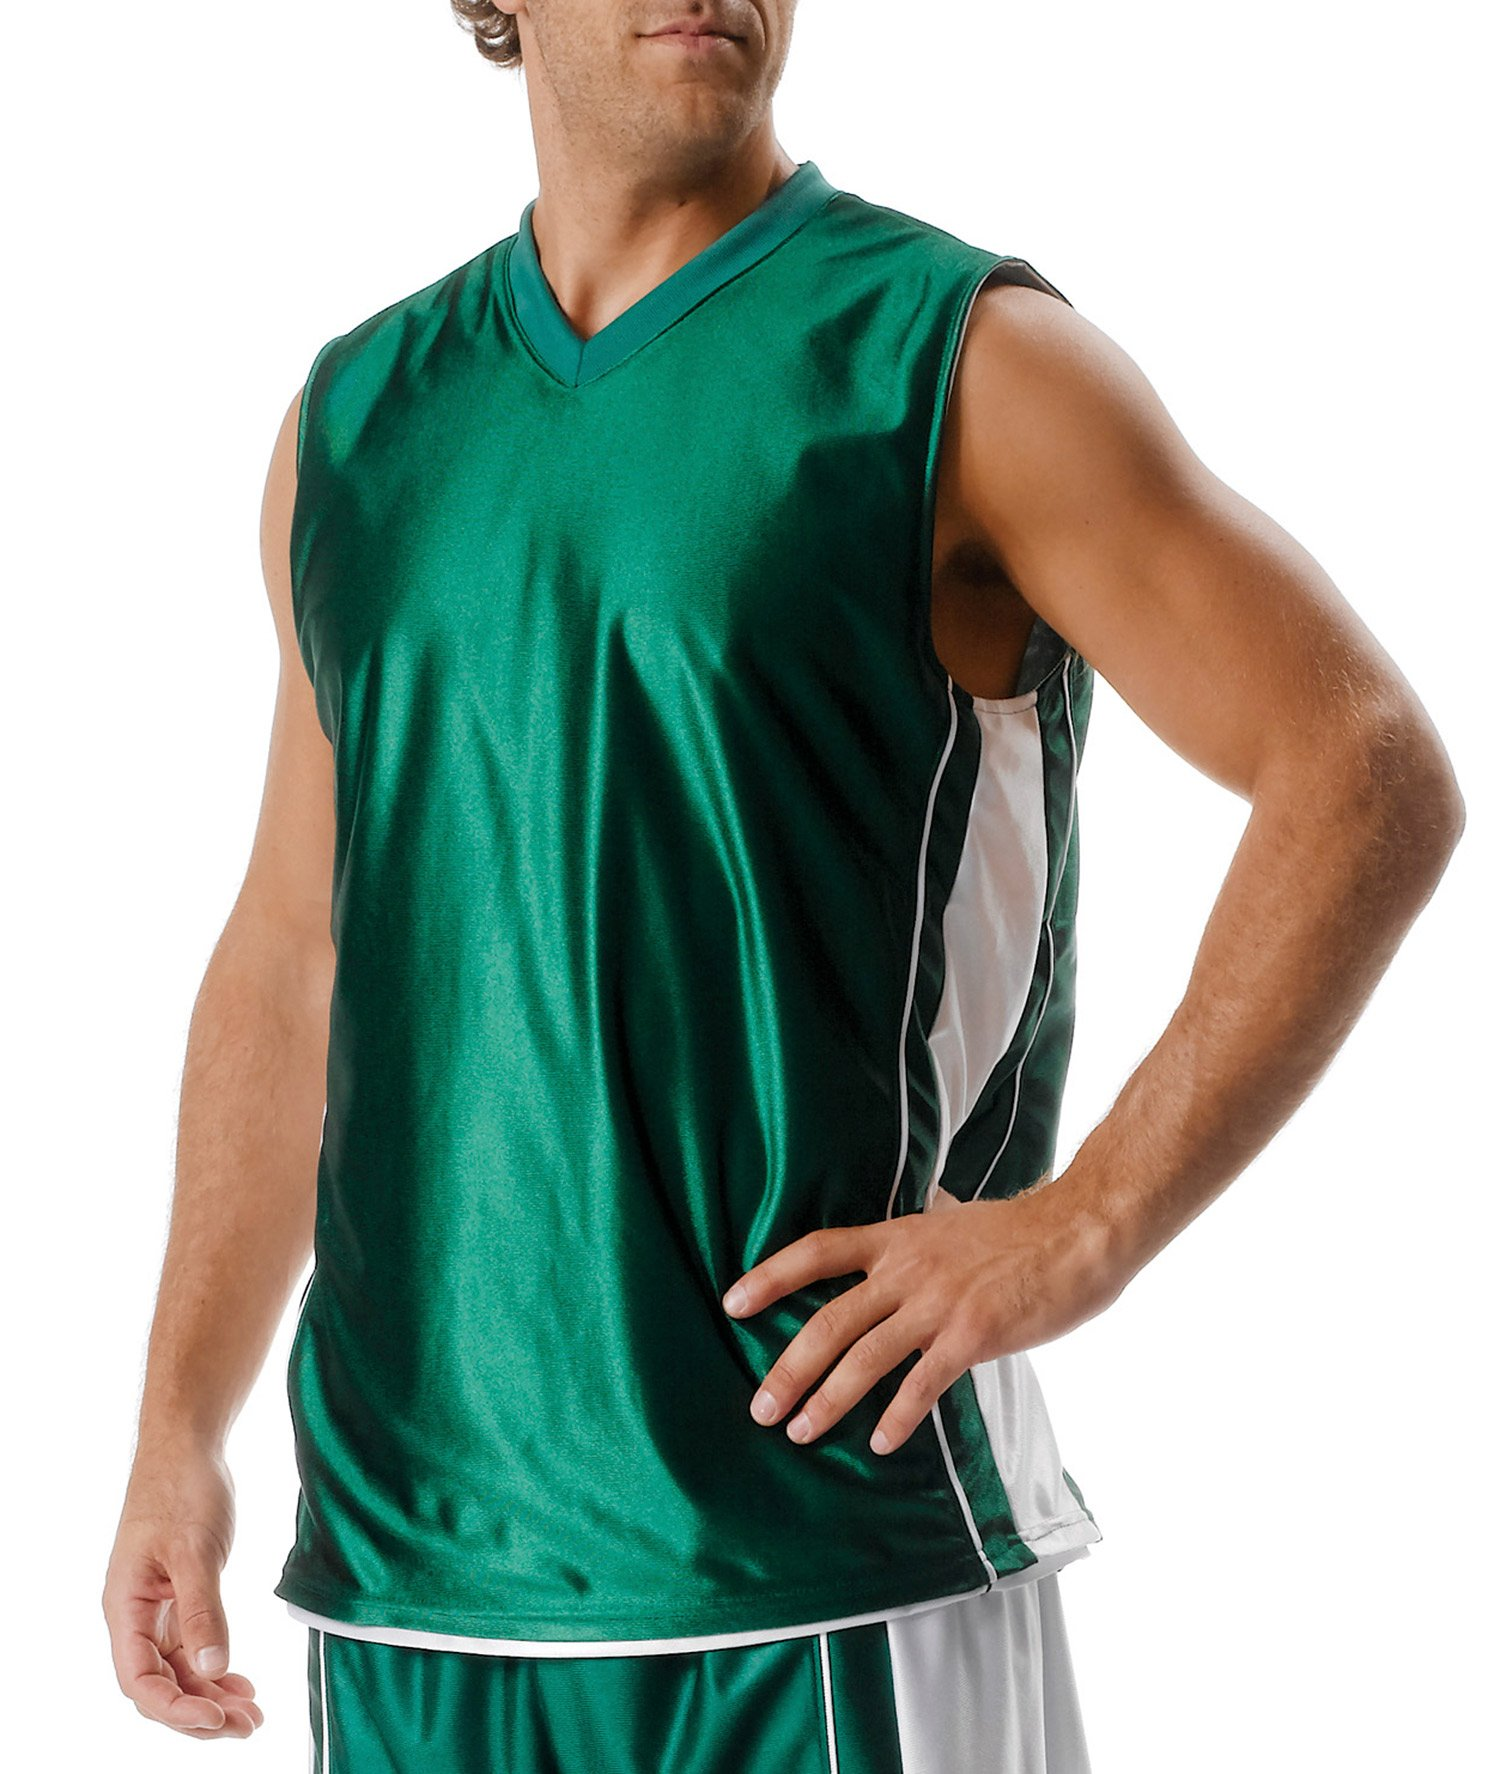 dbe6ba4870f A4 Youth Reversible Dazzle Muscle Jersey - Evan Webster INK